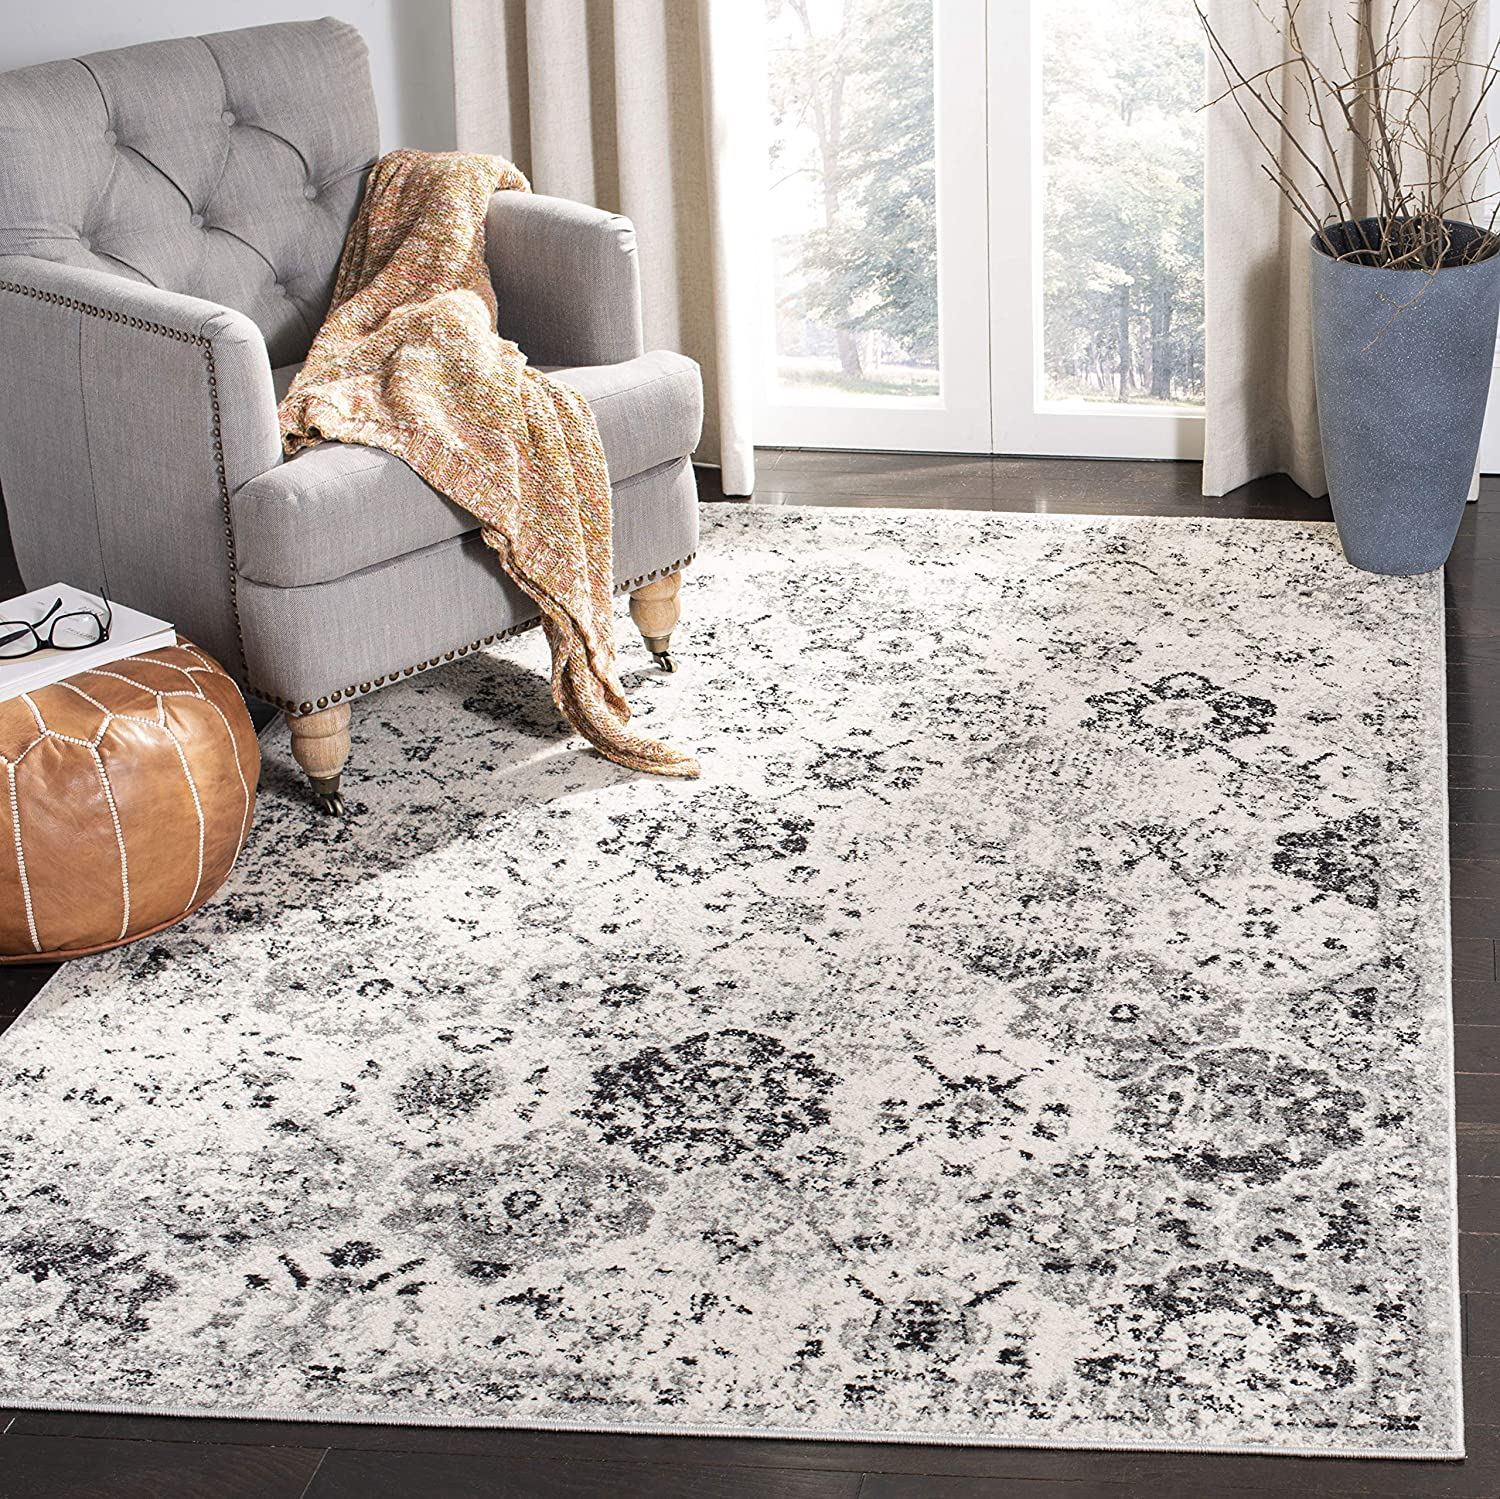 """Safavieh Madison Collection MAD611G Bohemian Chic Vintage Distressed Area Rug, 2' 3"""" x 4', Silver/Grey"""